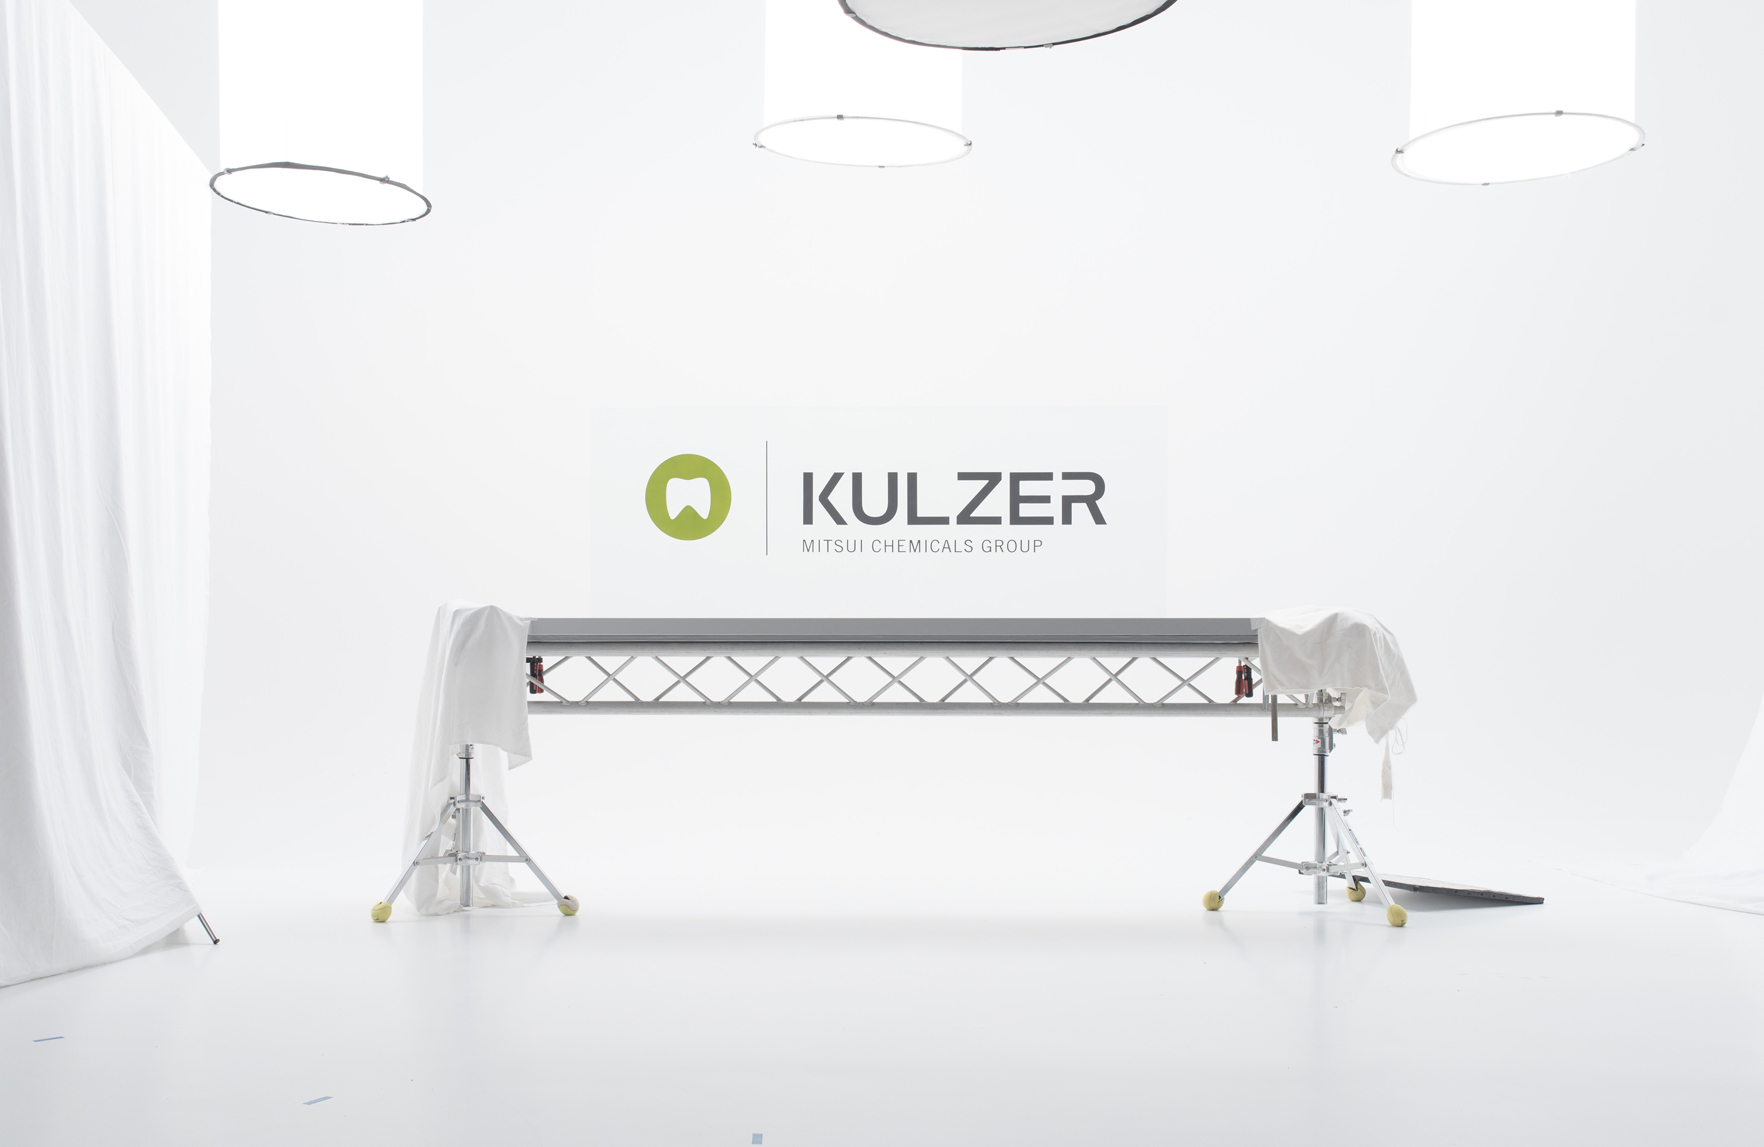 Shaping a new Brand: Kulzer Mitsui Chemicals Group